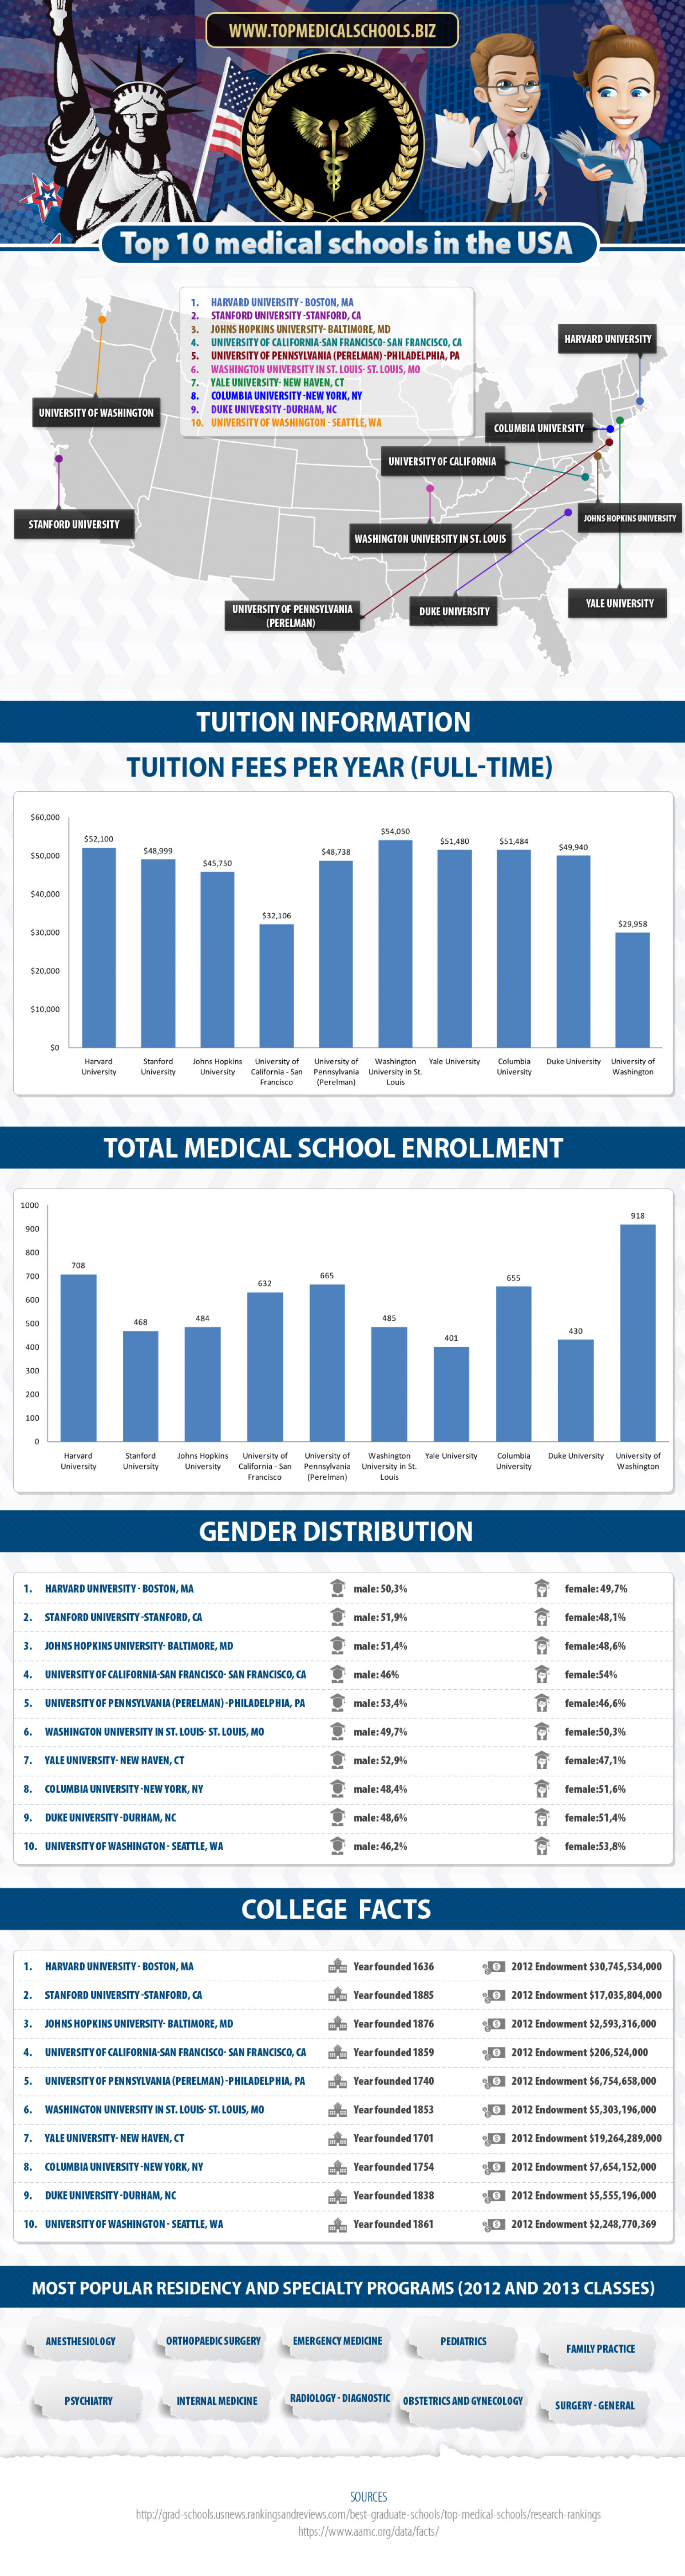 Top 10 Medical Schools in the USA Infographic